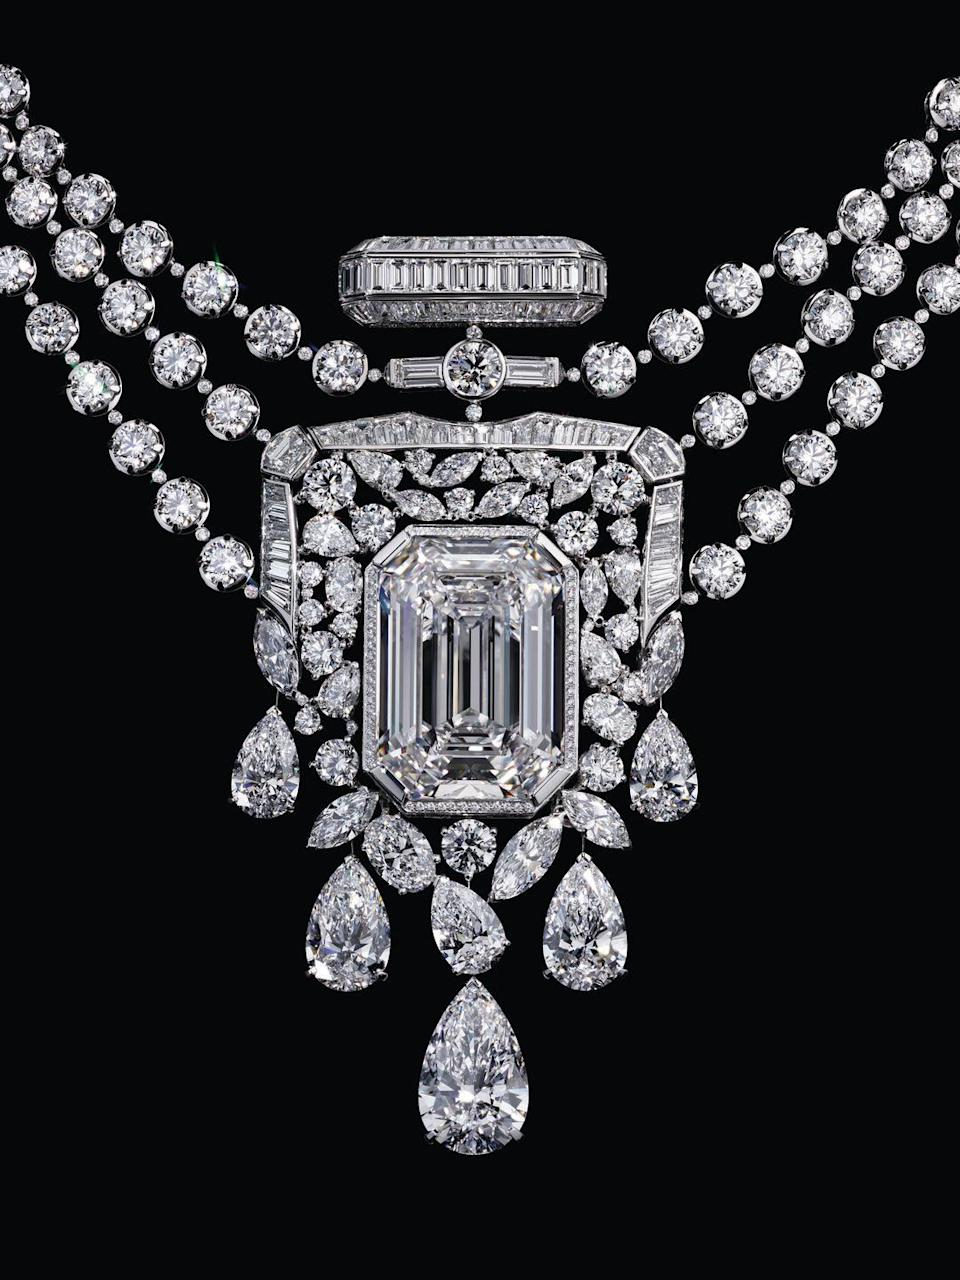 Photo credit: 55.55 Necklace' in 18K  White Gold and Diamonds by CHANEL High Jewellery